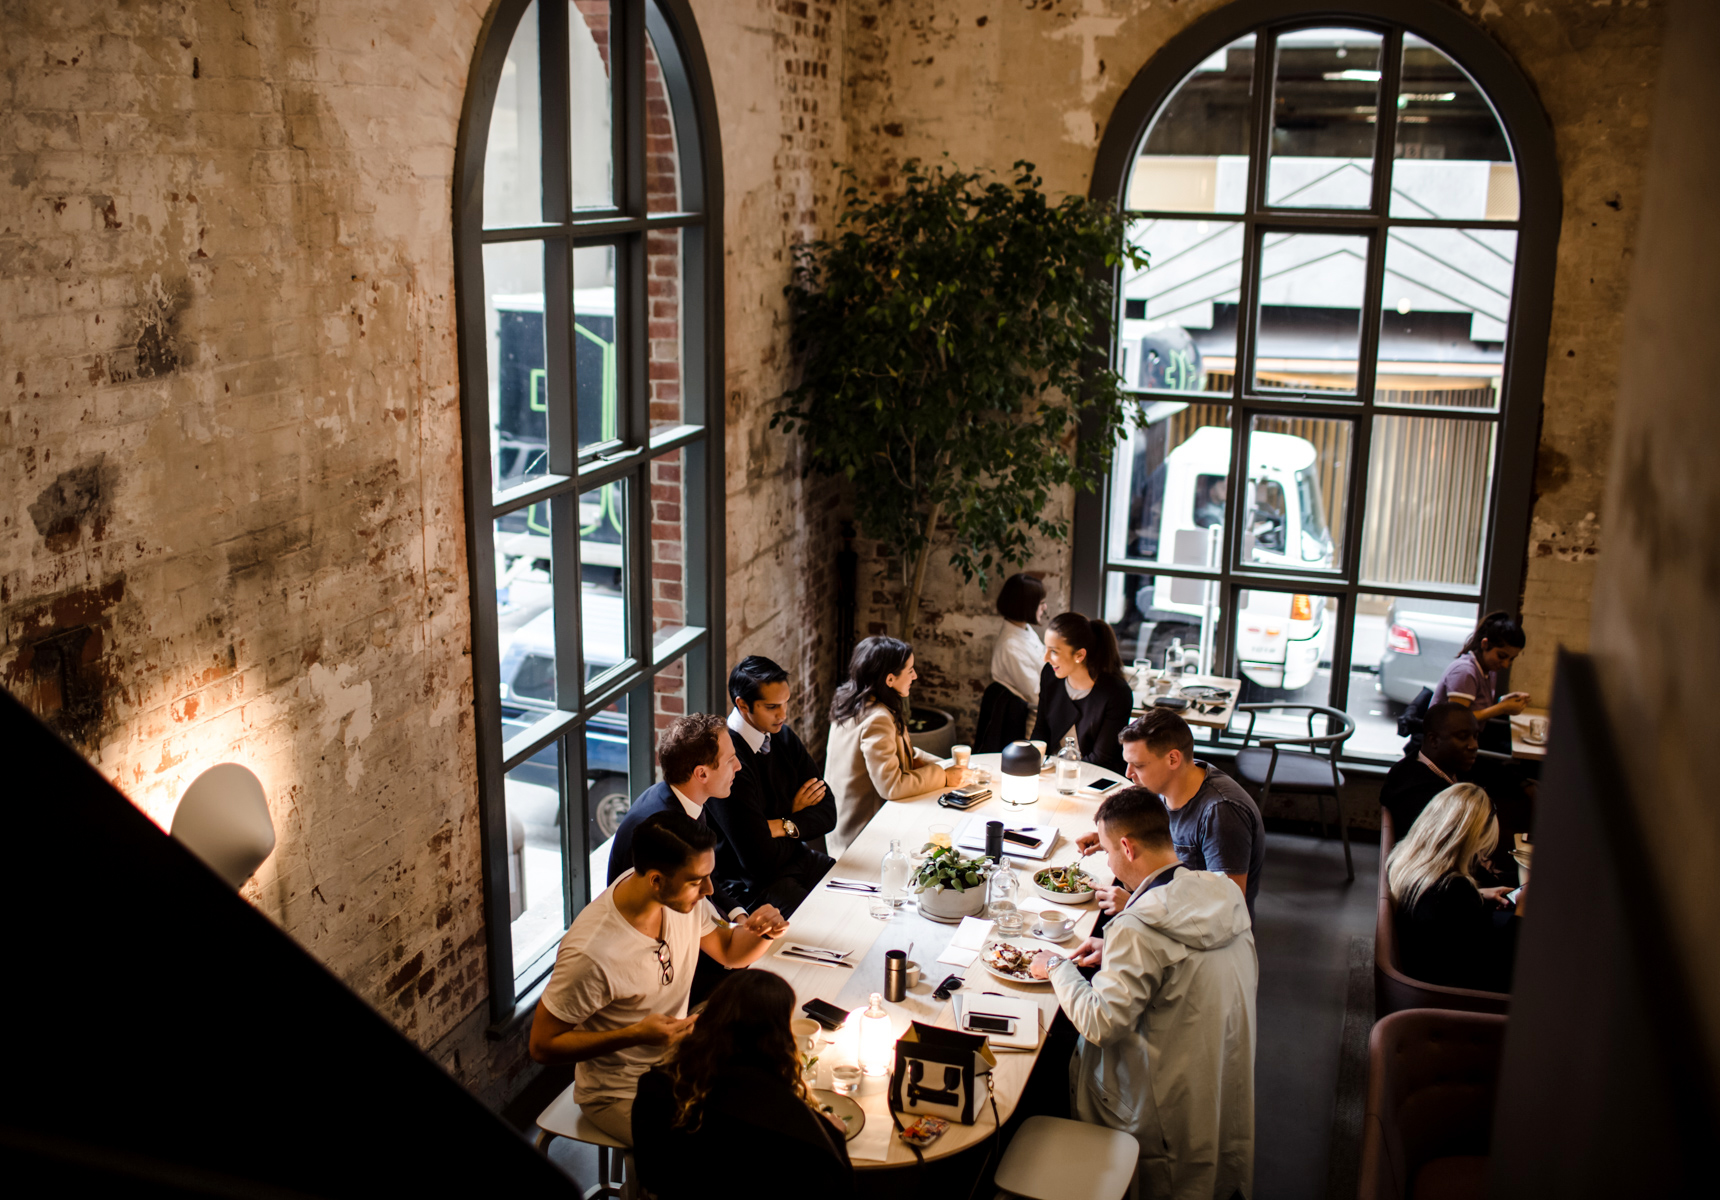 One-of-a-kind cafe Higher Ground, set in a former power station with 15-metre-high ceilings   Photography by Gareth Sobey